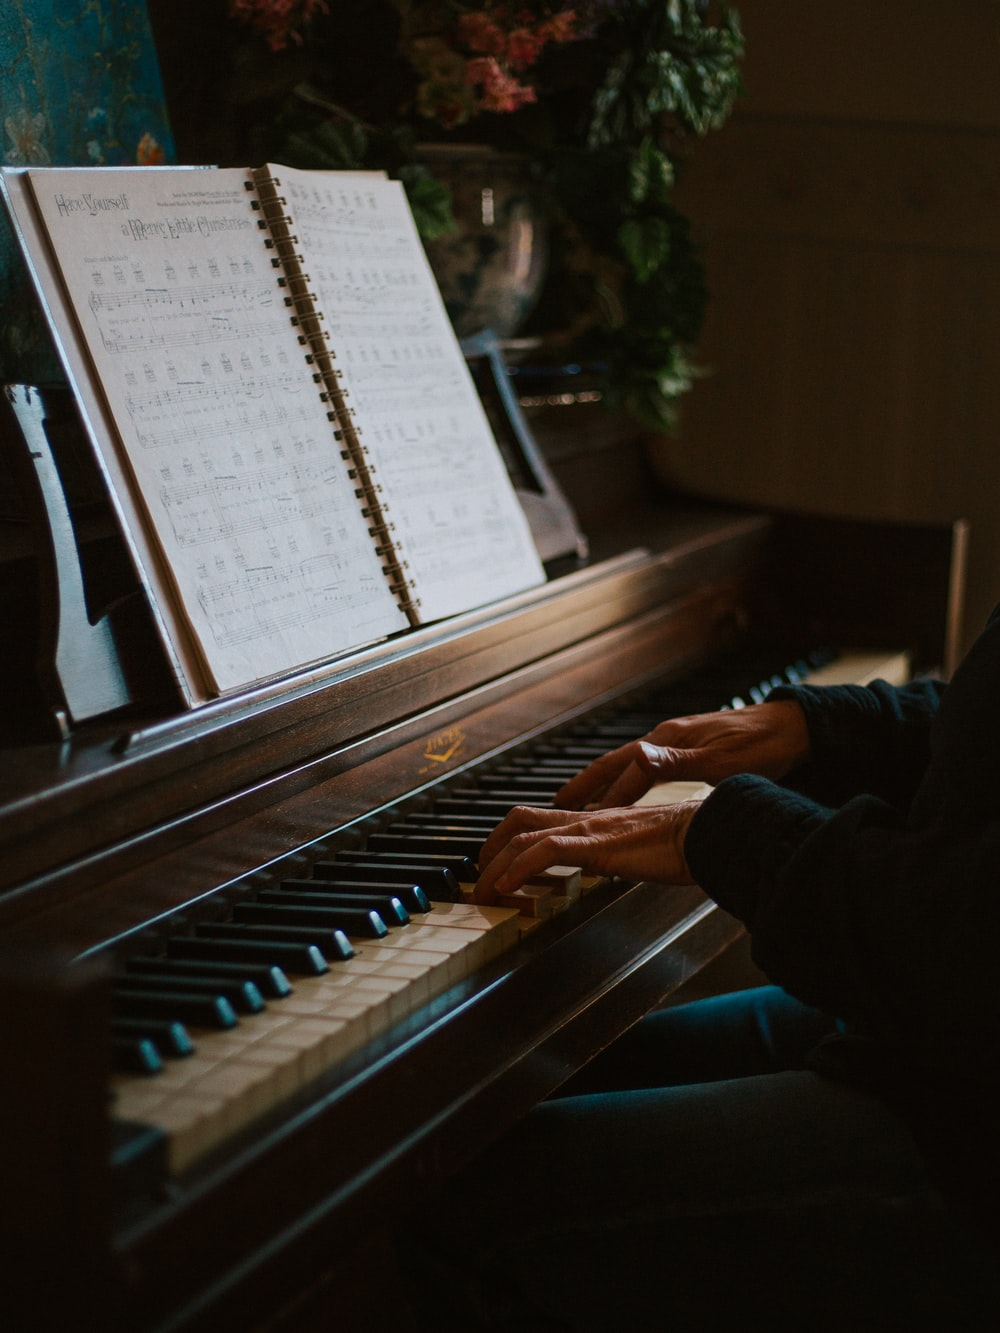 man playing the piano in front of open music book